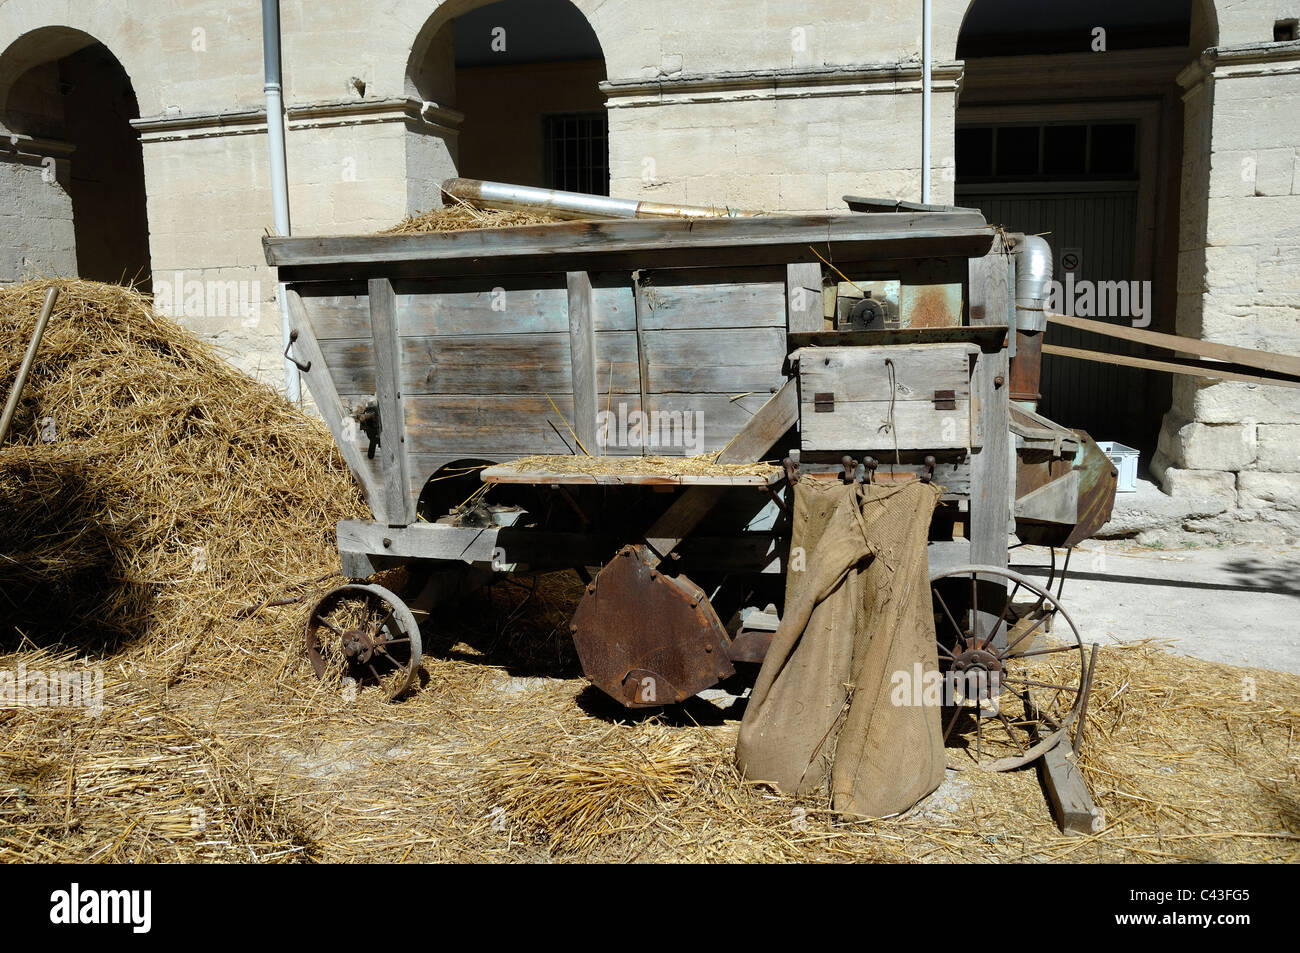 Vintage, Old or Antique Wooden Threshing Machine Provence France - Stock Image